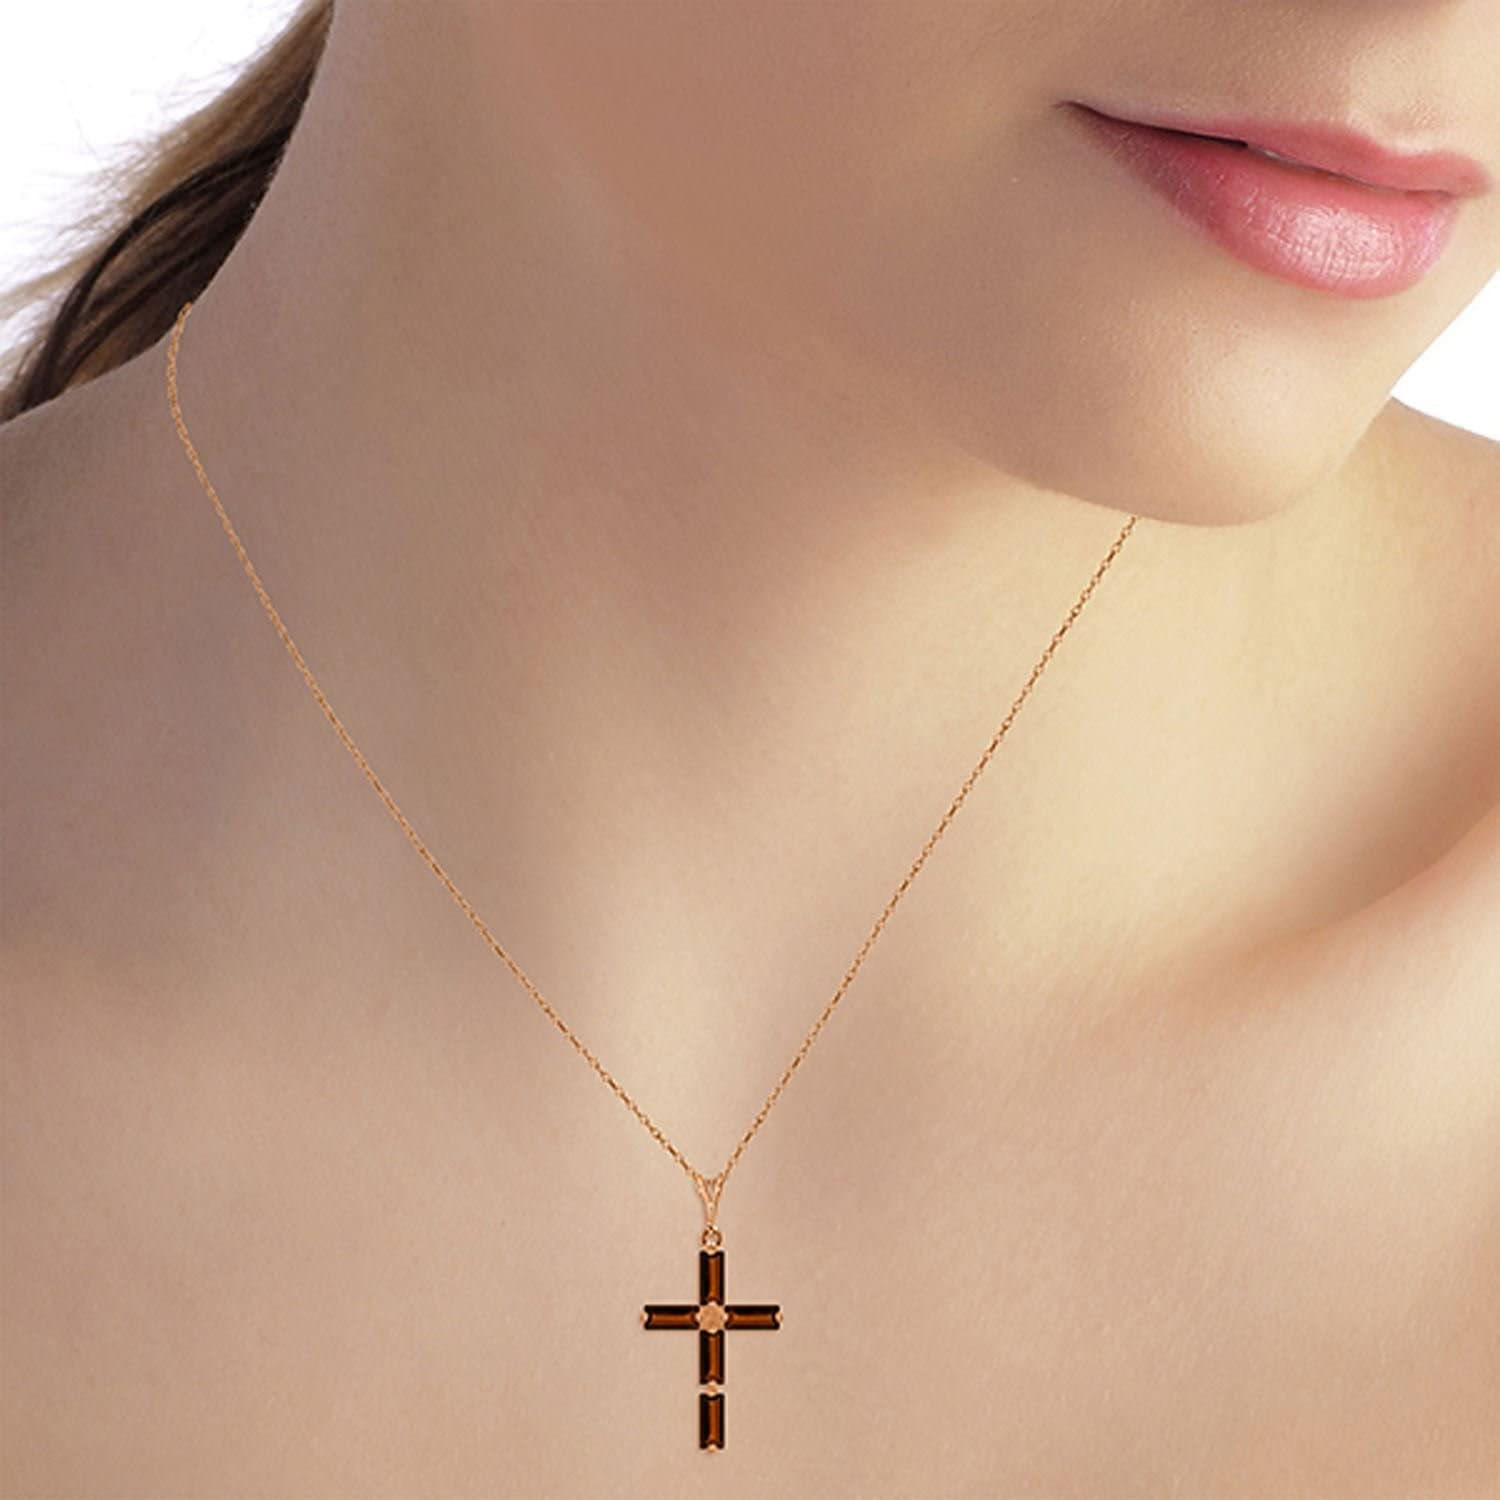 ALARRI 14K Solid Rose Gold Cross Necklace w// Natural Garnets with 22 Inch Chain Length